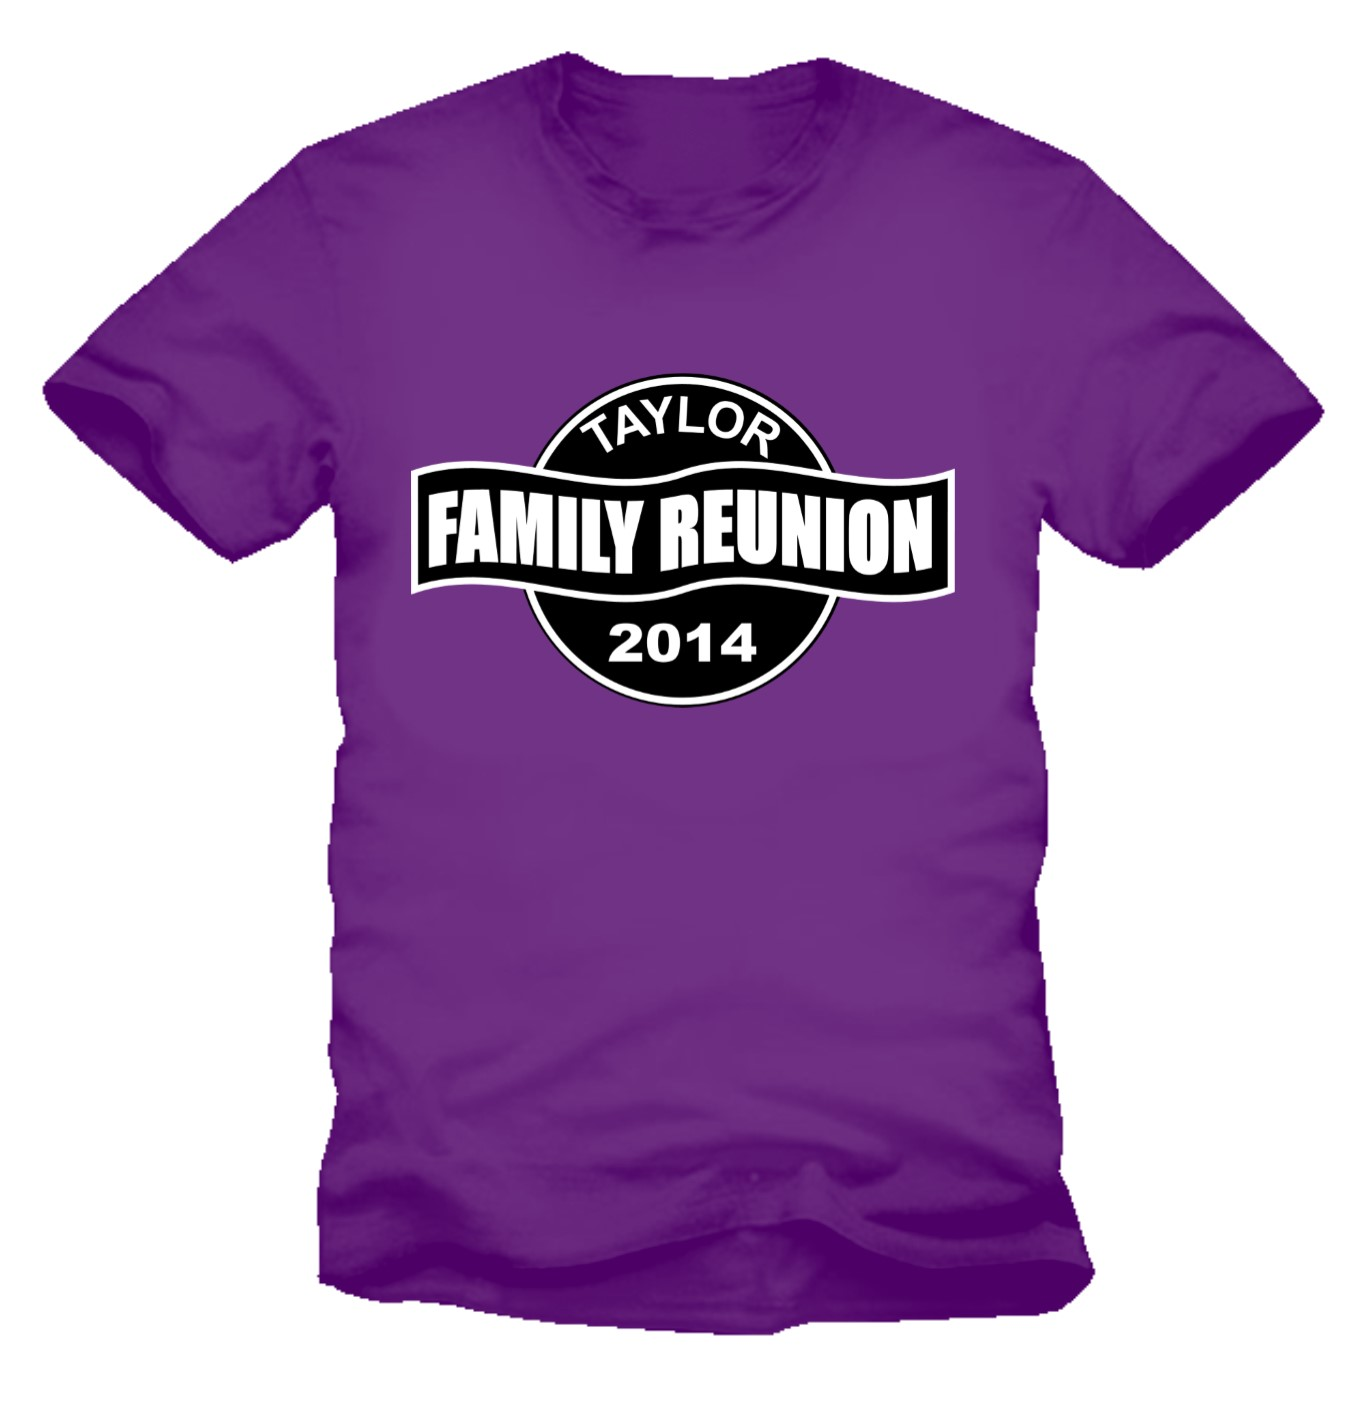 Family Reunion T Shirt Design Ideas